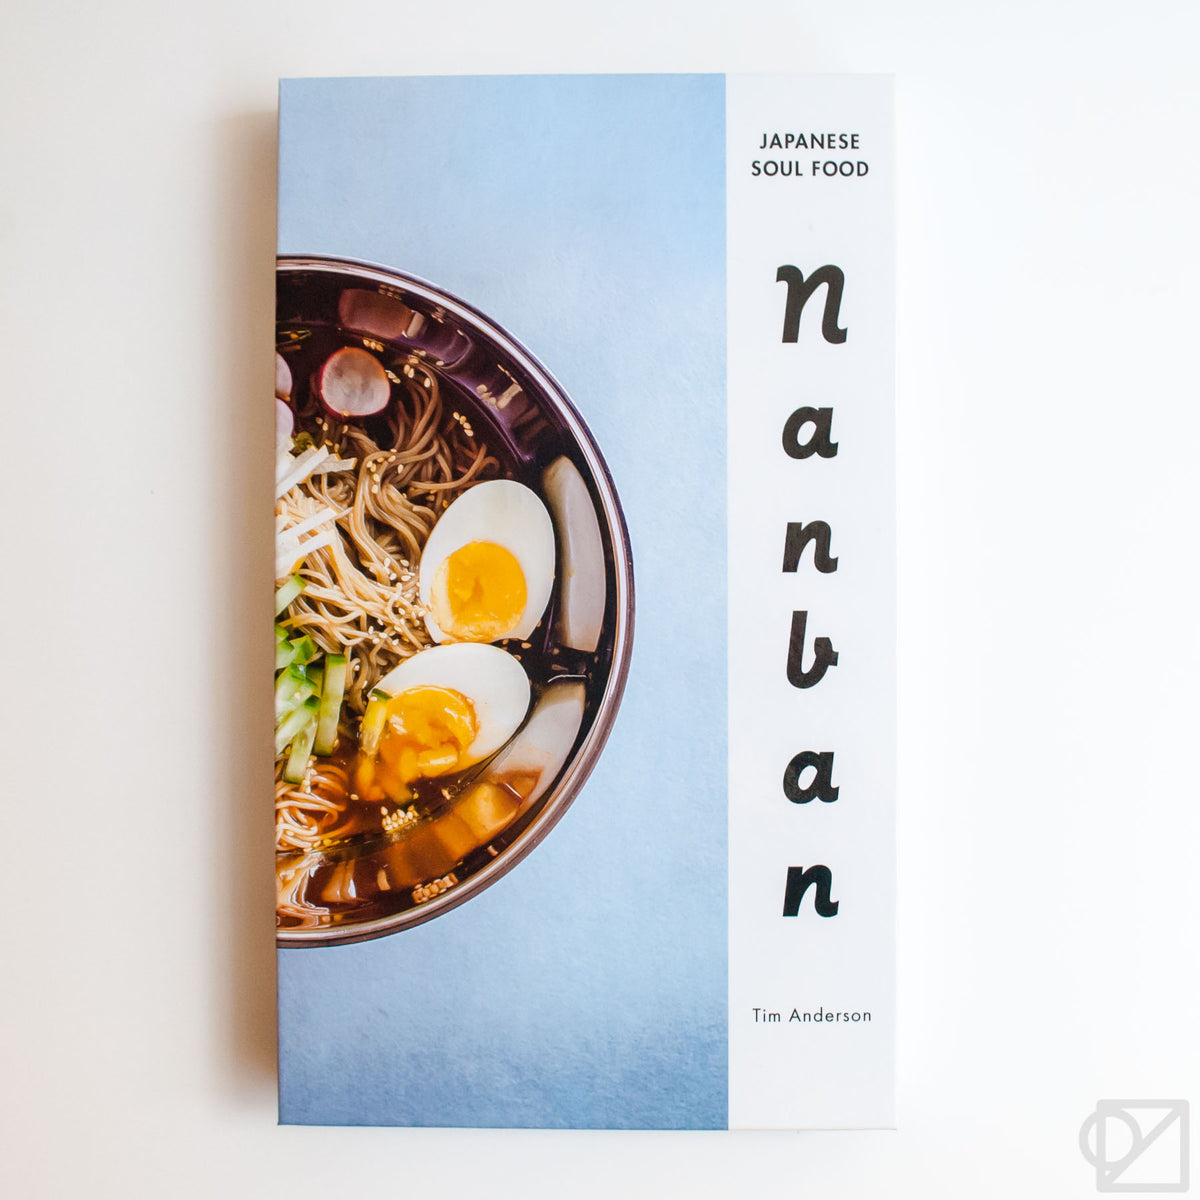 Nanban: Japanese Soul Food